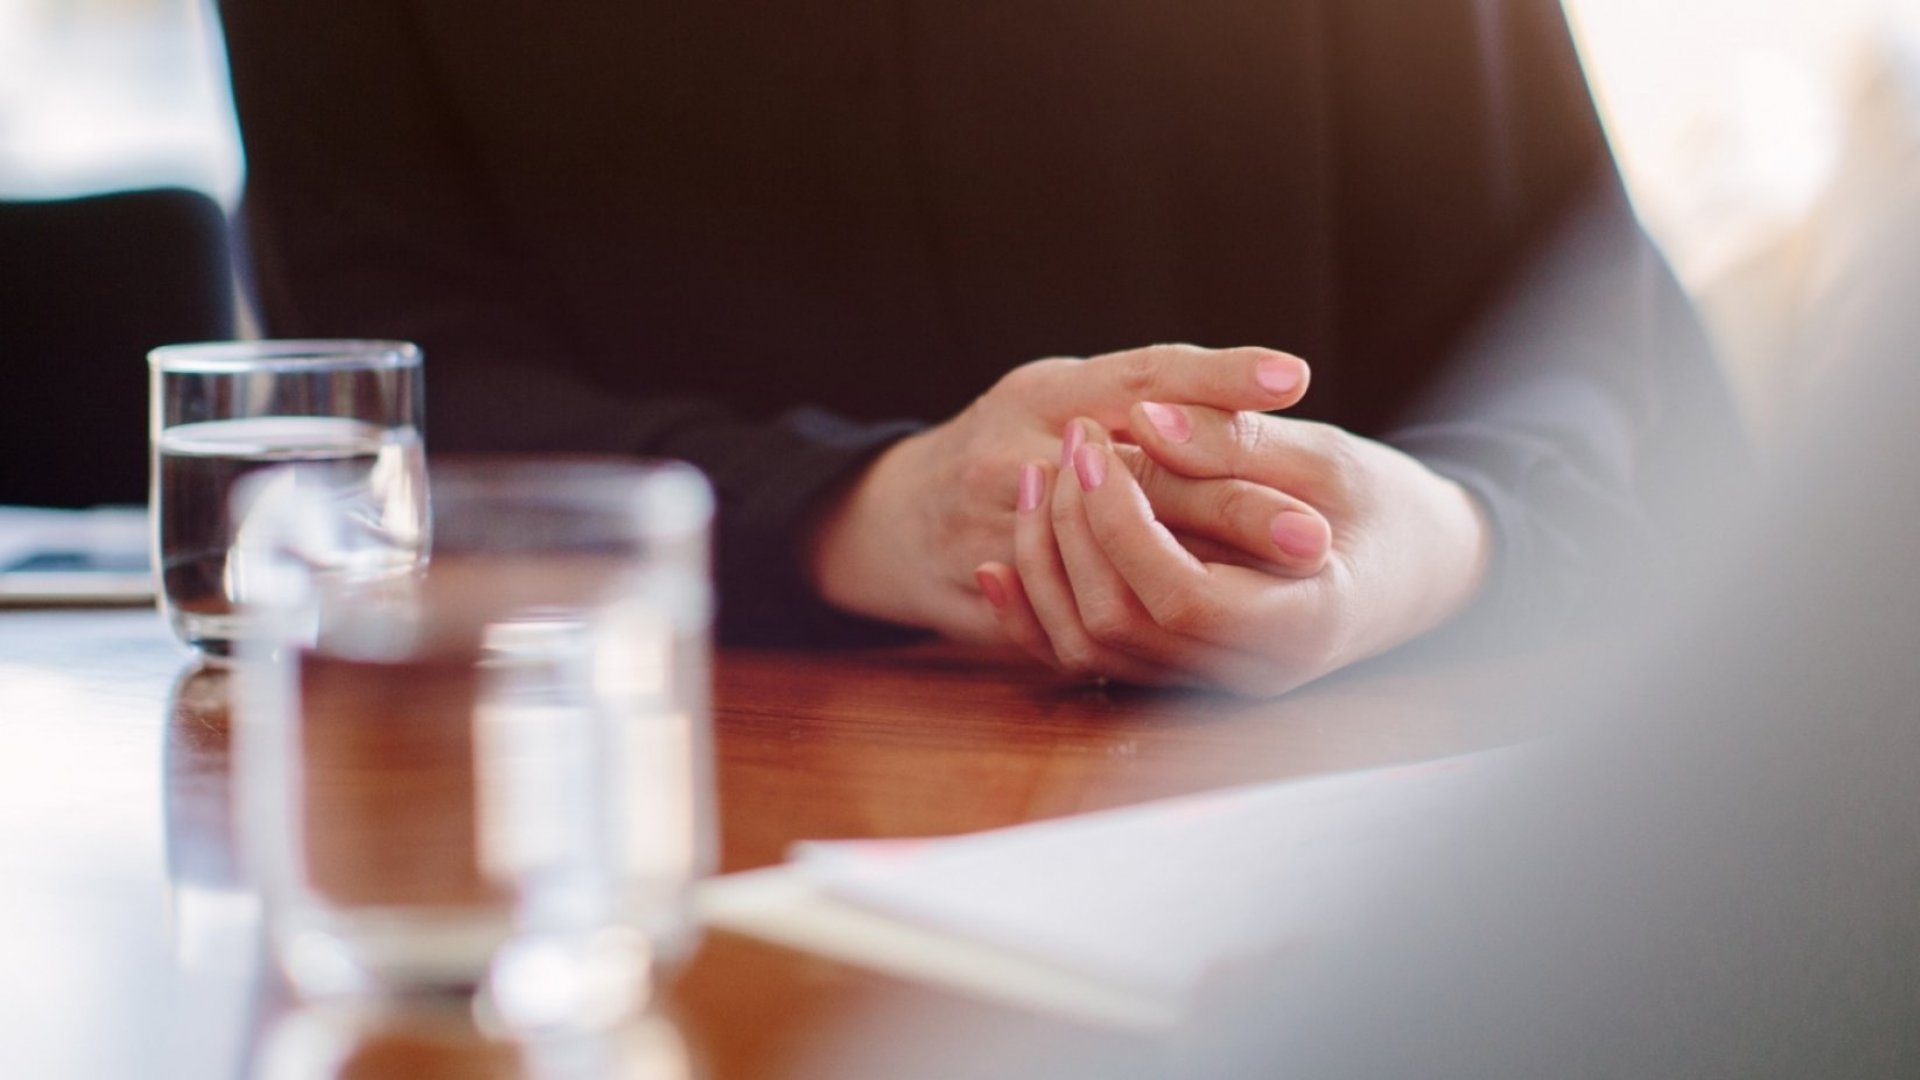 These four interview questions will help you hire with confidence.